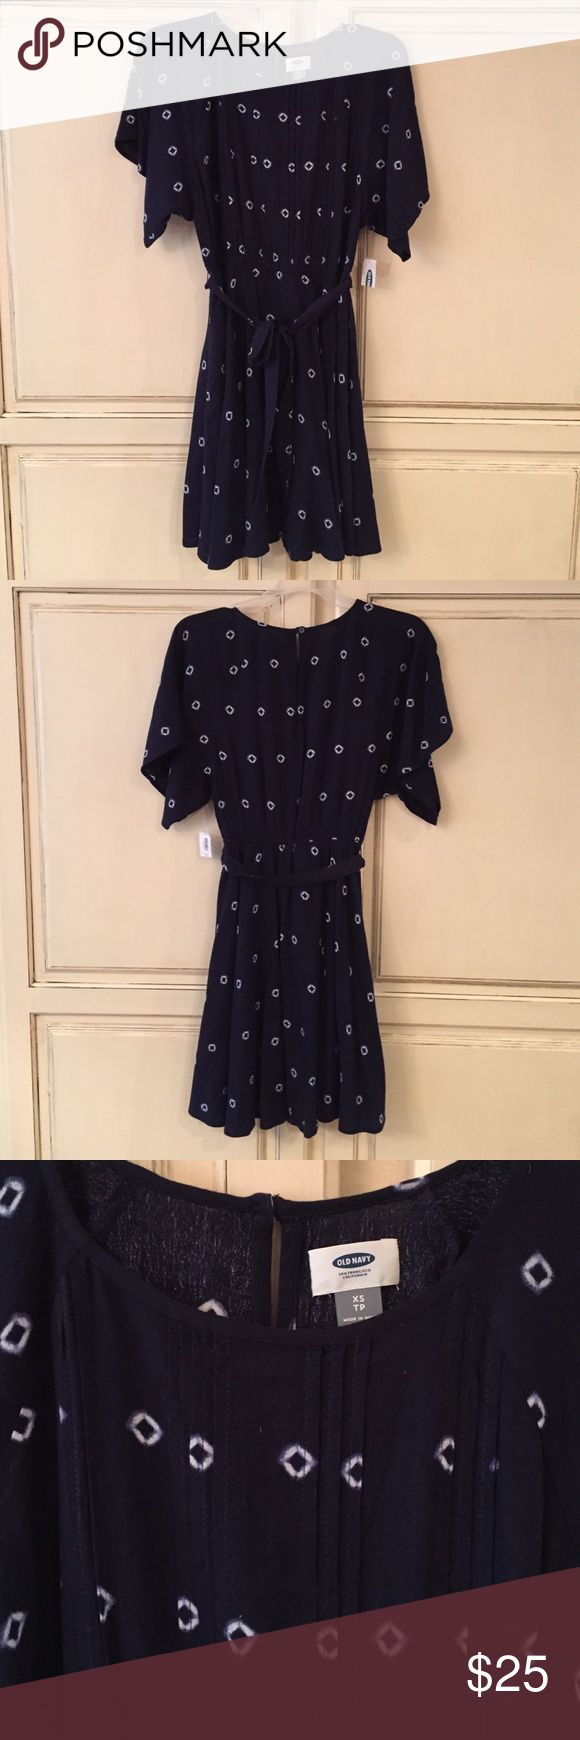 NWT Old Navy size XS casual dress NWT Old Navy size XS casual dress. Elastic waist. Pleated across the front of the body. Ties around the waist. Buttons at the back of the neck. Old Navy Dresses